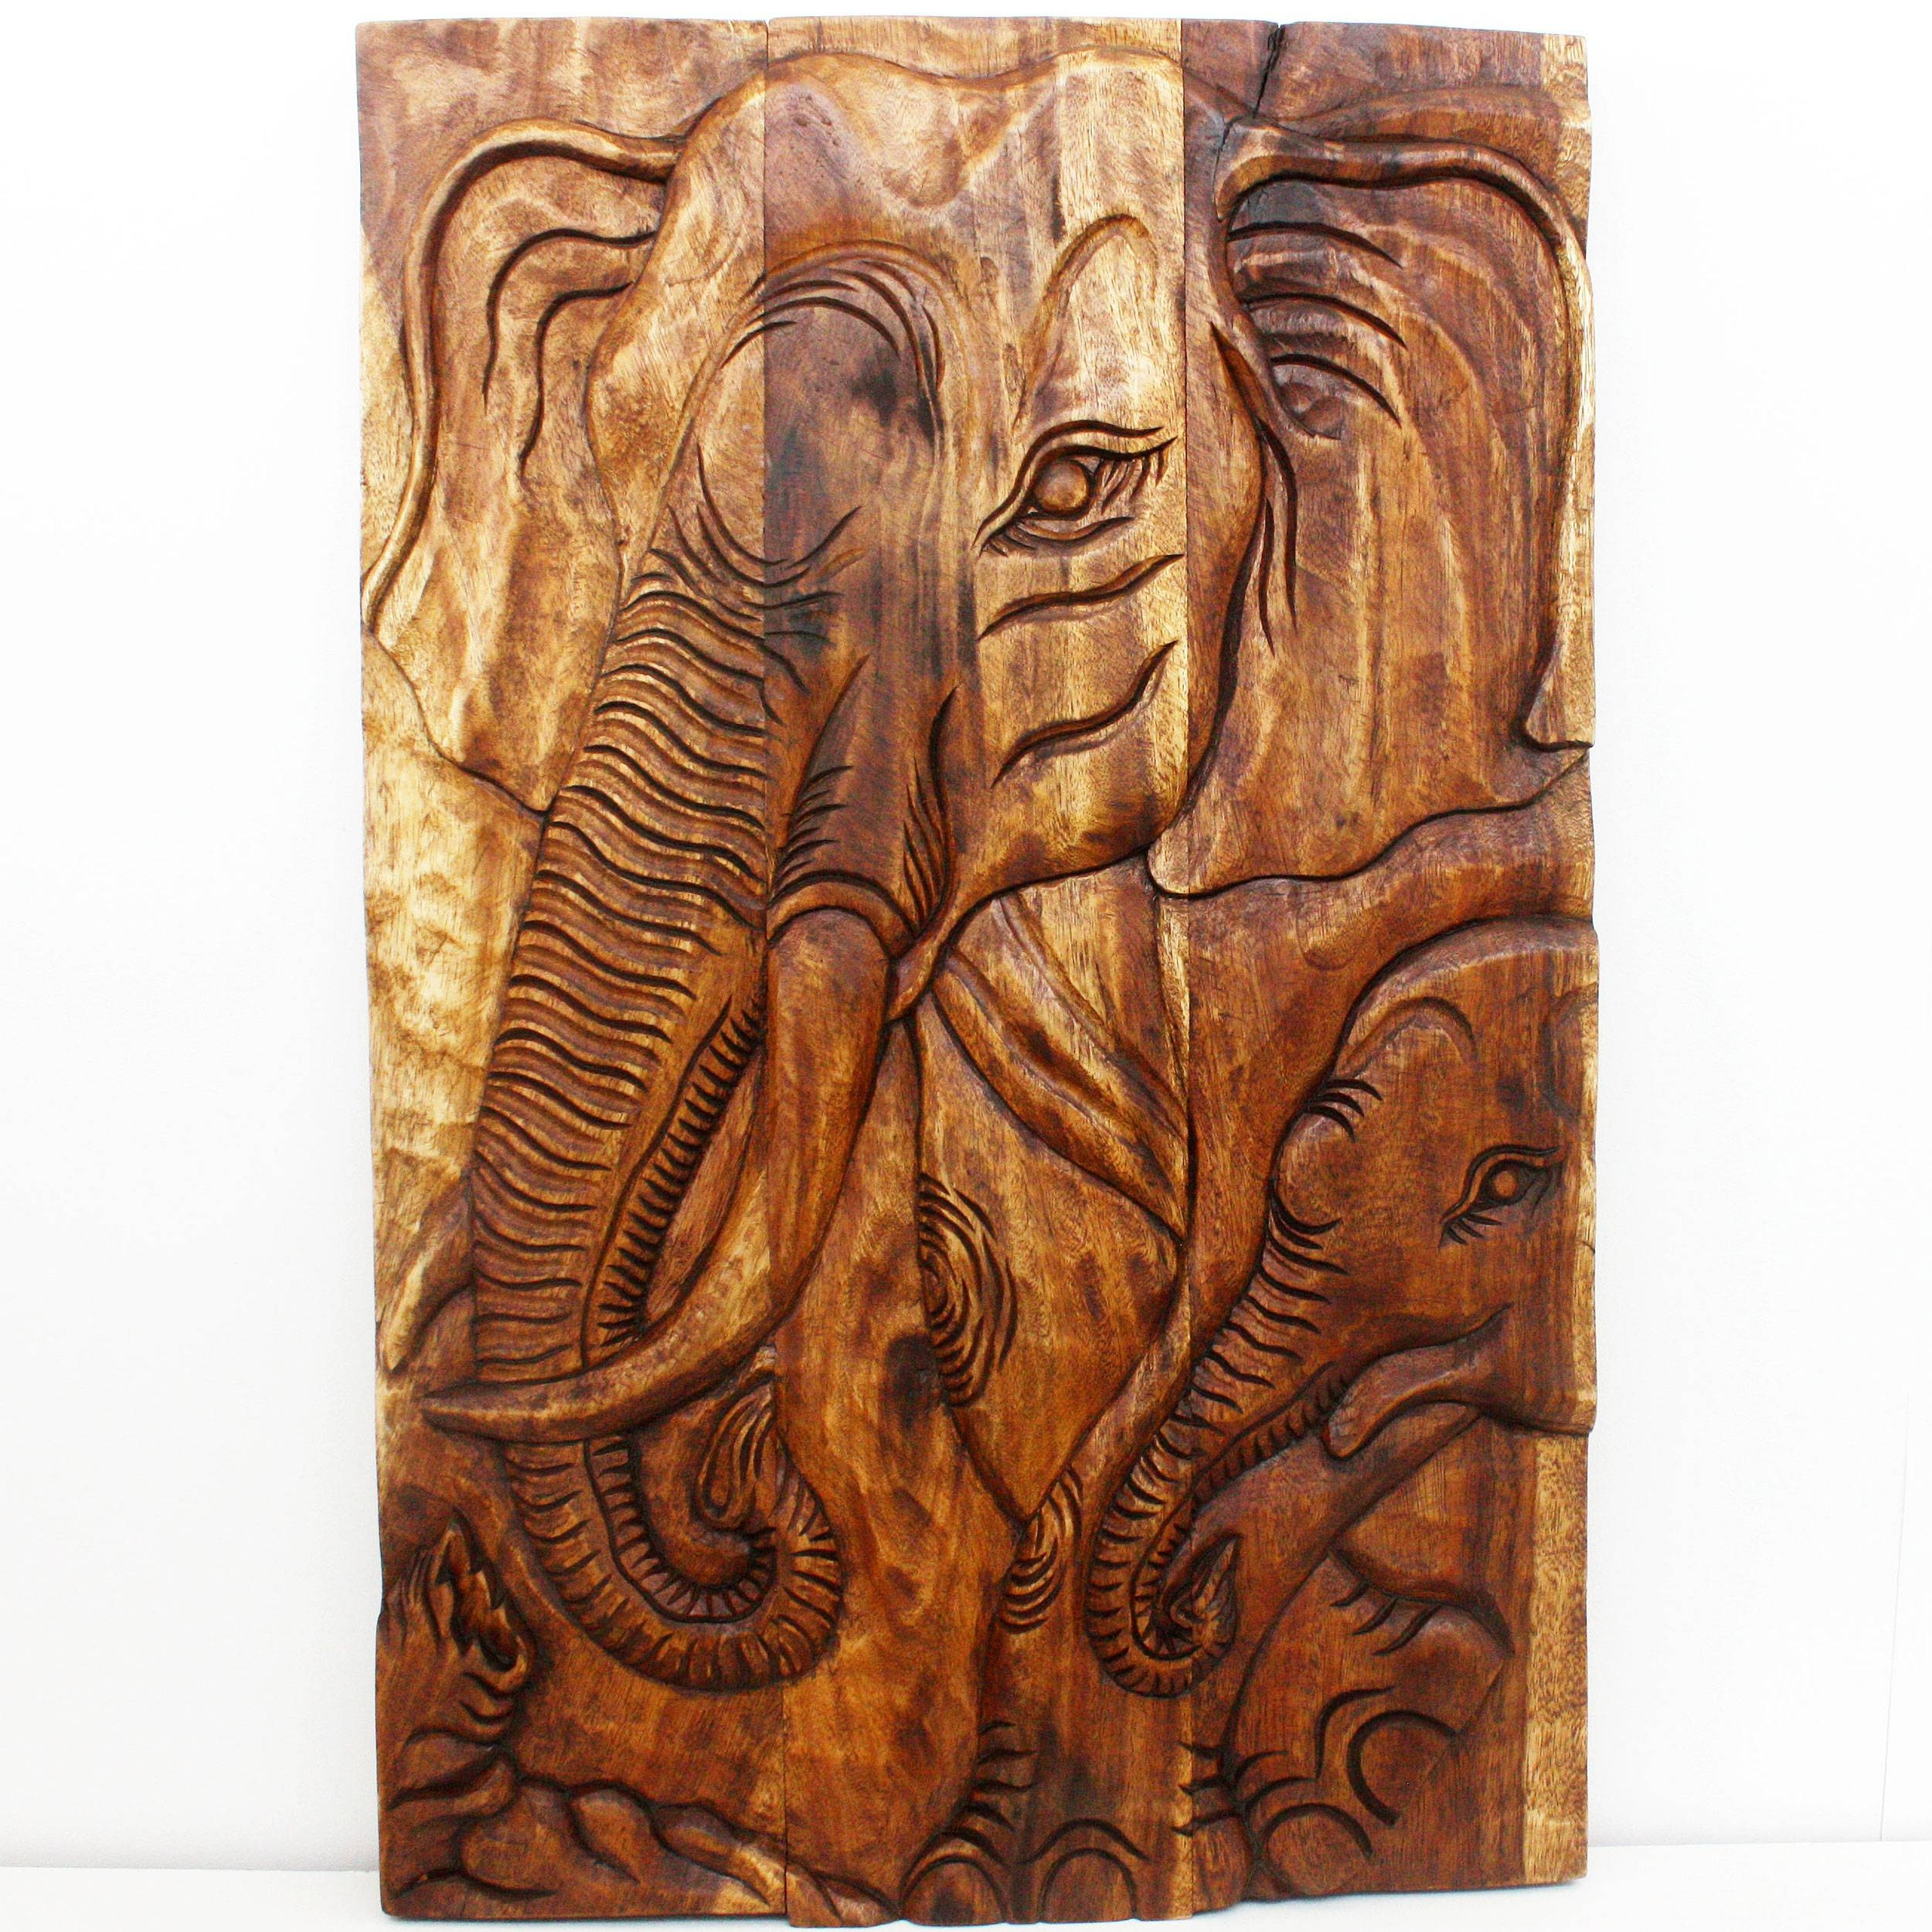 Home Designd Wood Wall Art Decor Ideas Imposing Photos Celtic 79 With Latest Celtic Tree Of Life Wall Art (View 24 of 30)